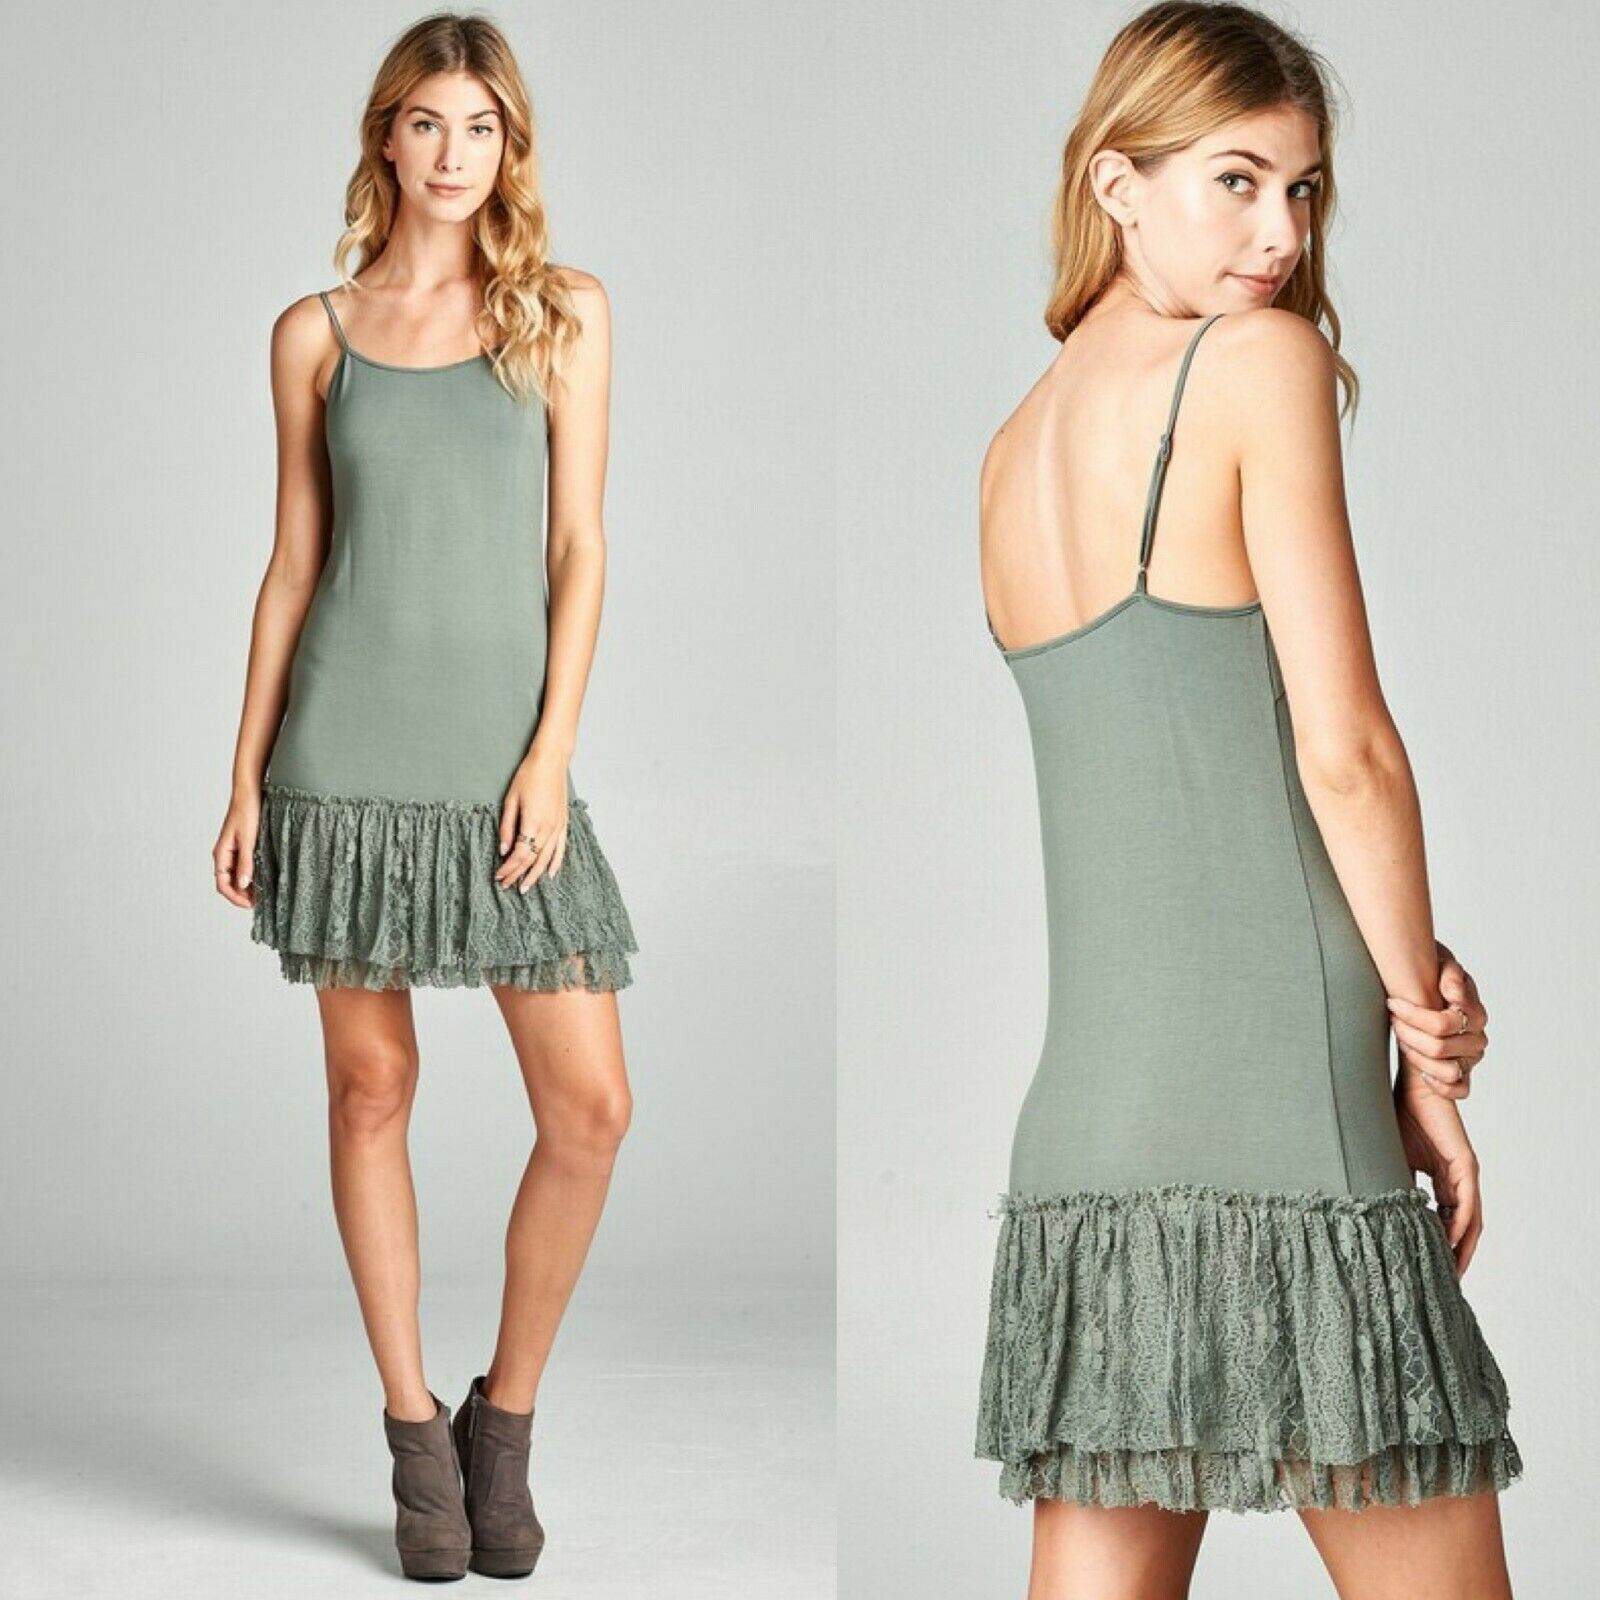 Olive Green Lace Dress Extender Slip Knit Cami Tank Dress Liner ODDI